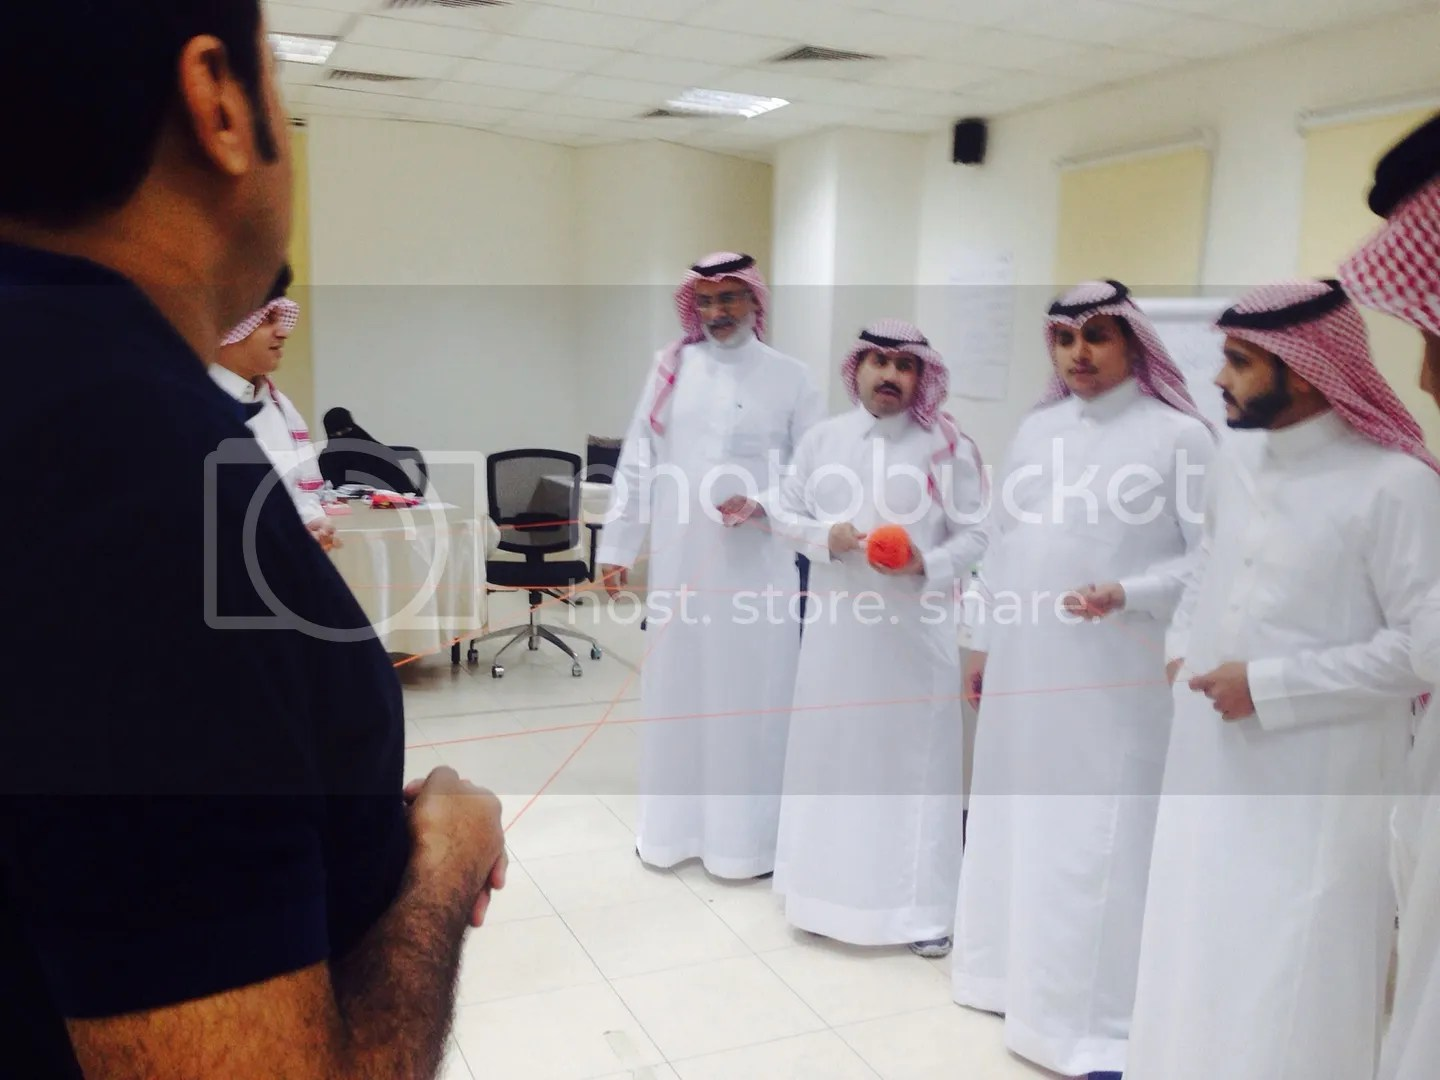 Sphere ToT trainees in Riyadh, Saudi Arabia